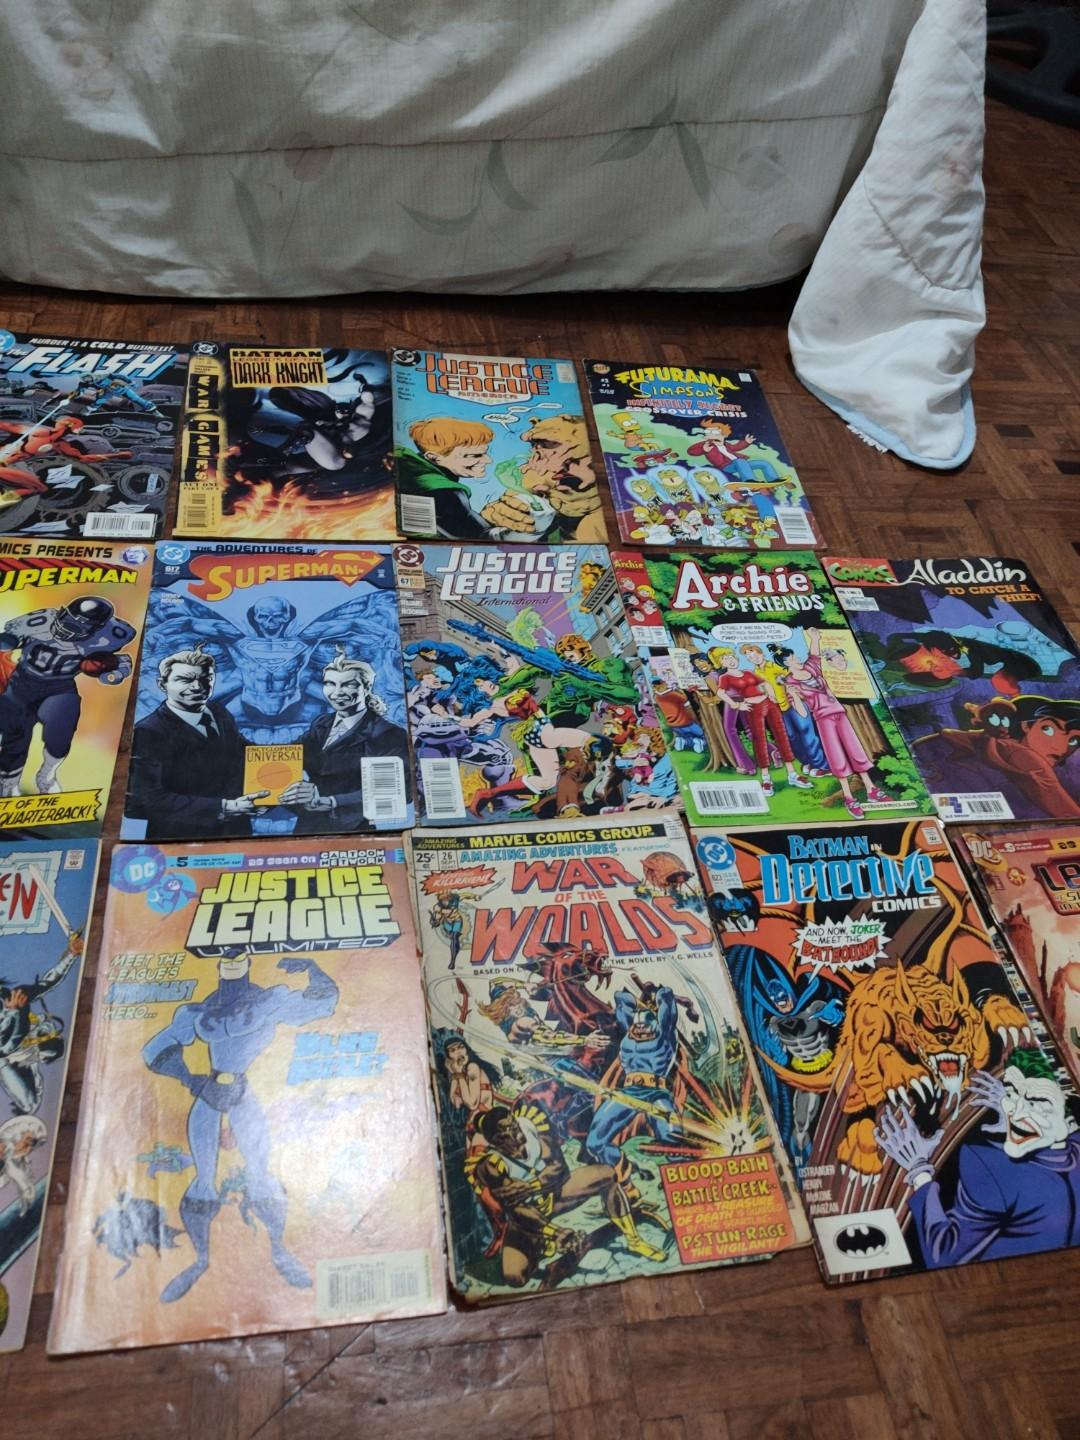 DC Comics Set(Batman, Superman, Flash, Justice League, Teen Titans) with Assorted Comics and Free Damaged Comics